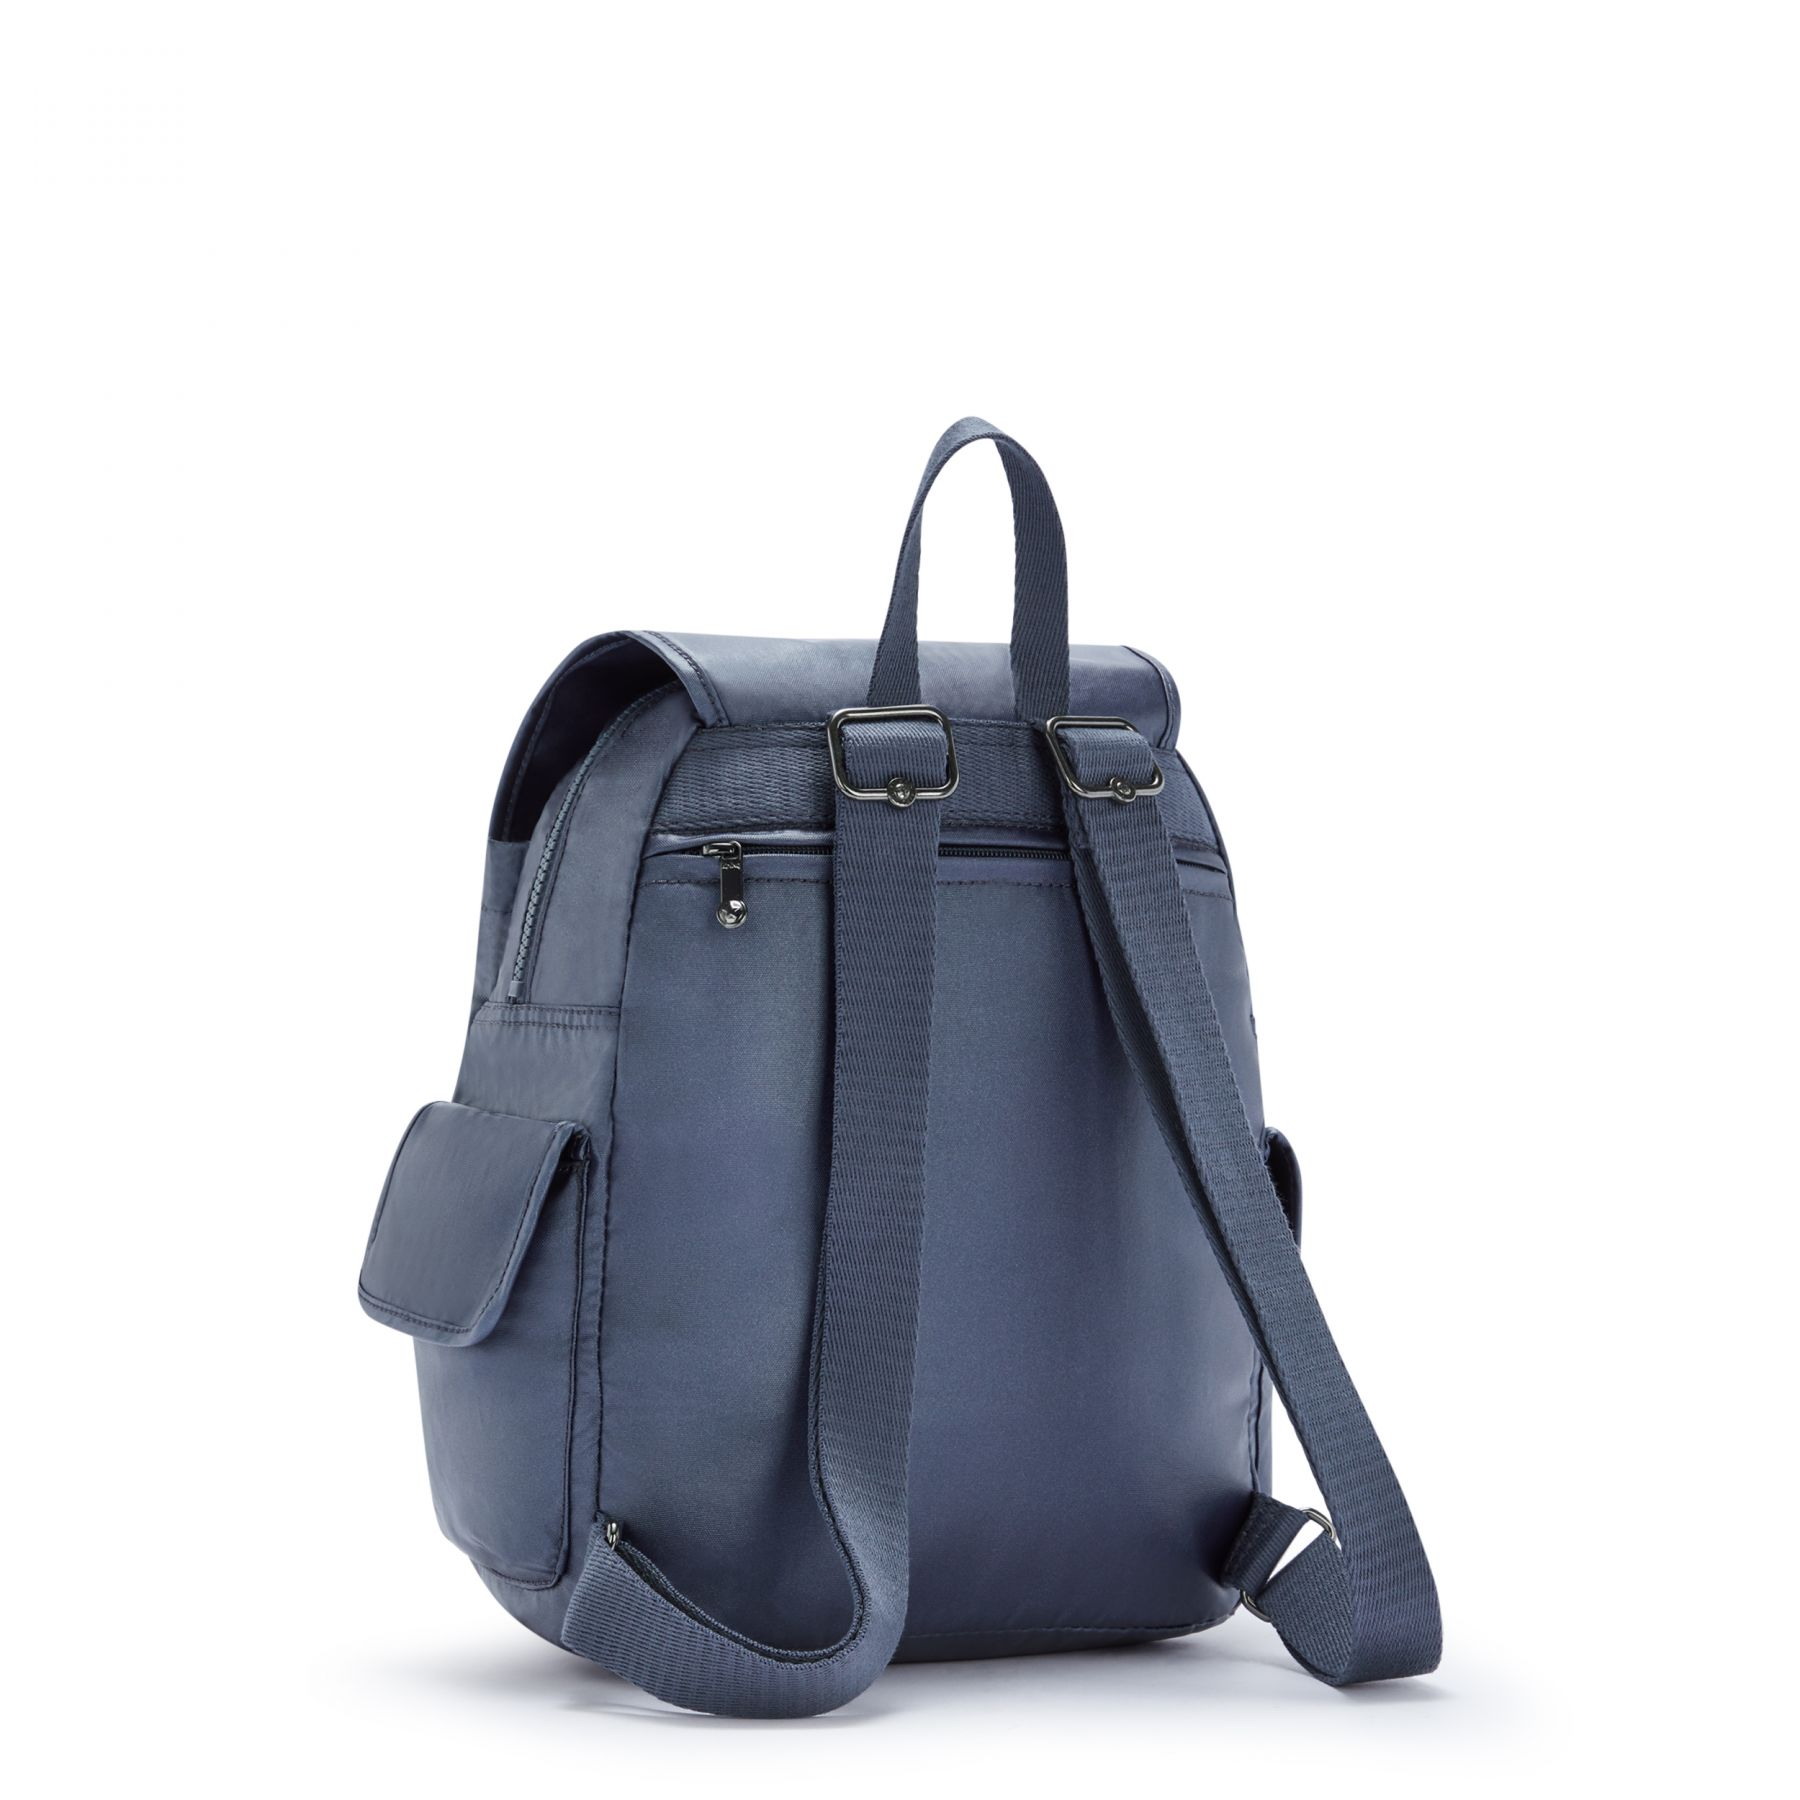 CITY PACK S OUTLET by Kipling